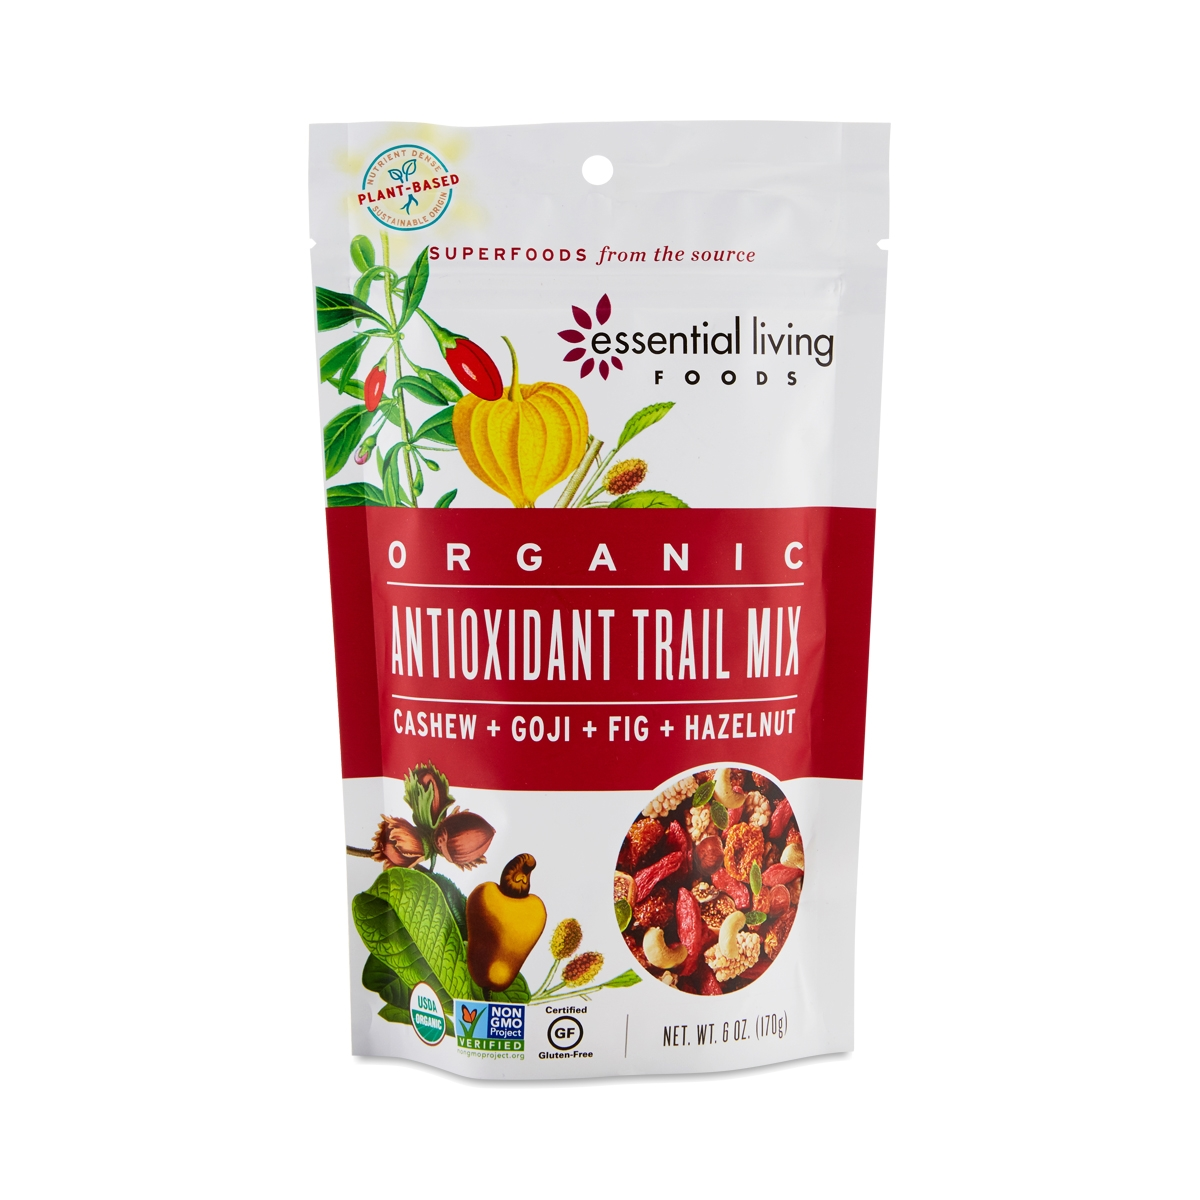 Antioxidant Trail Mix. Thrive · Food · Essential Living Foods